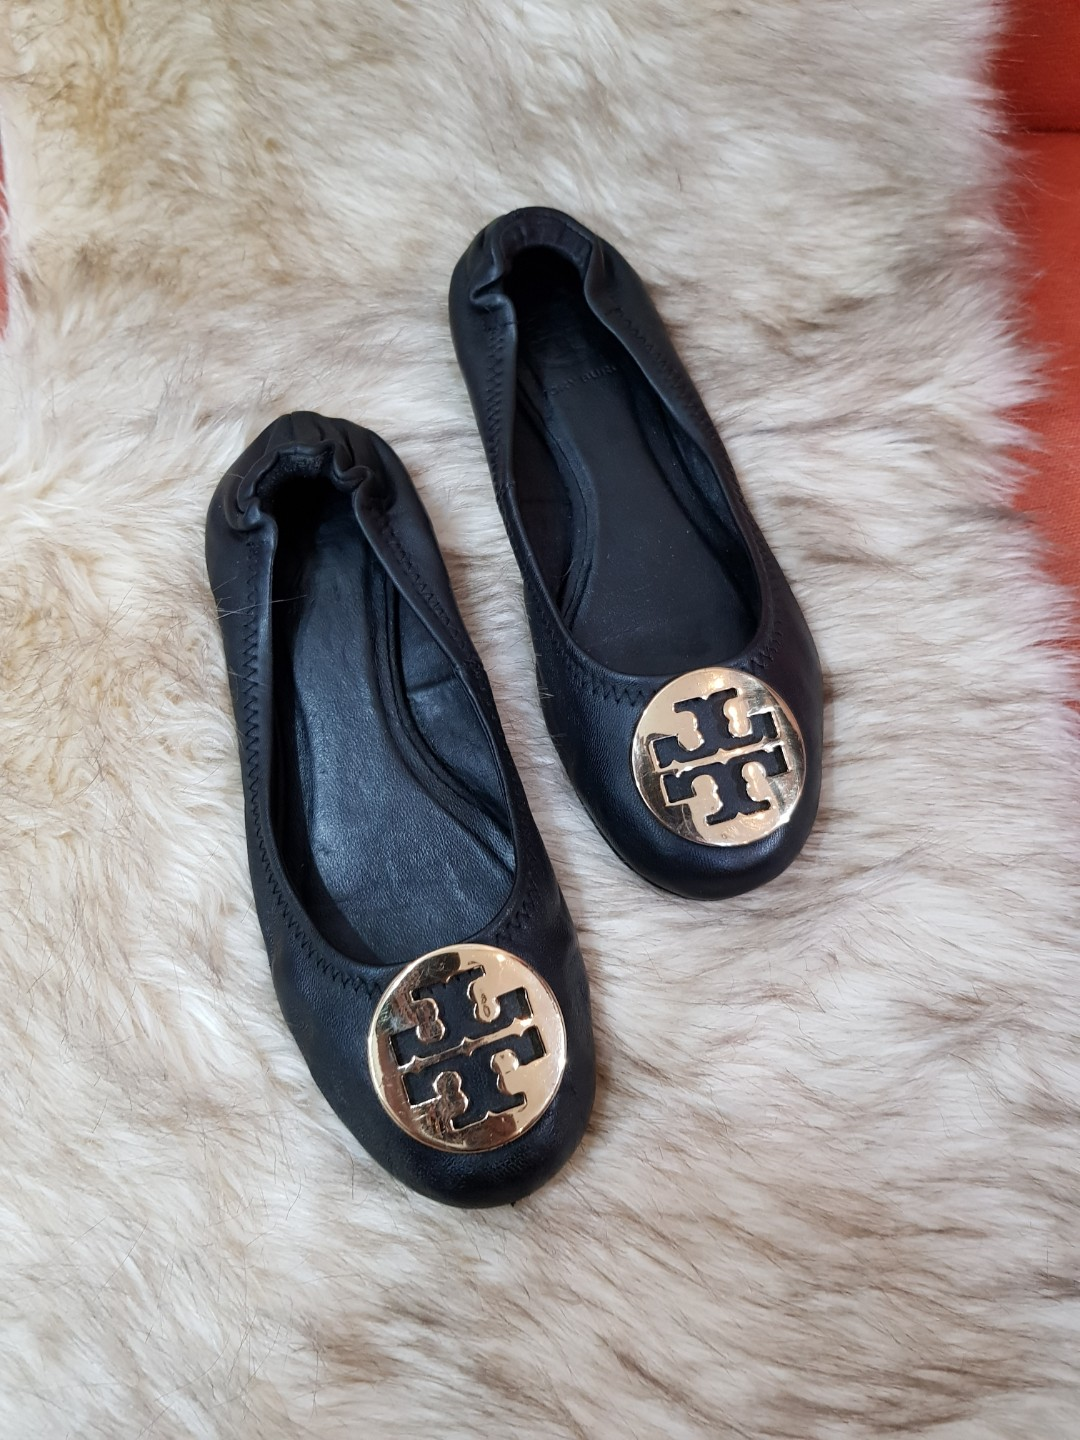 3072e77c98a Authentic Tory Burch Reva In Black Gold Ballet Flats Size 6